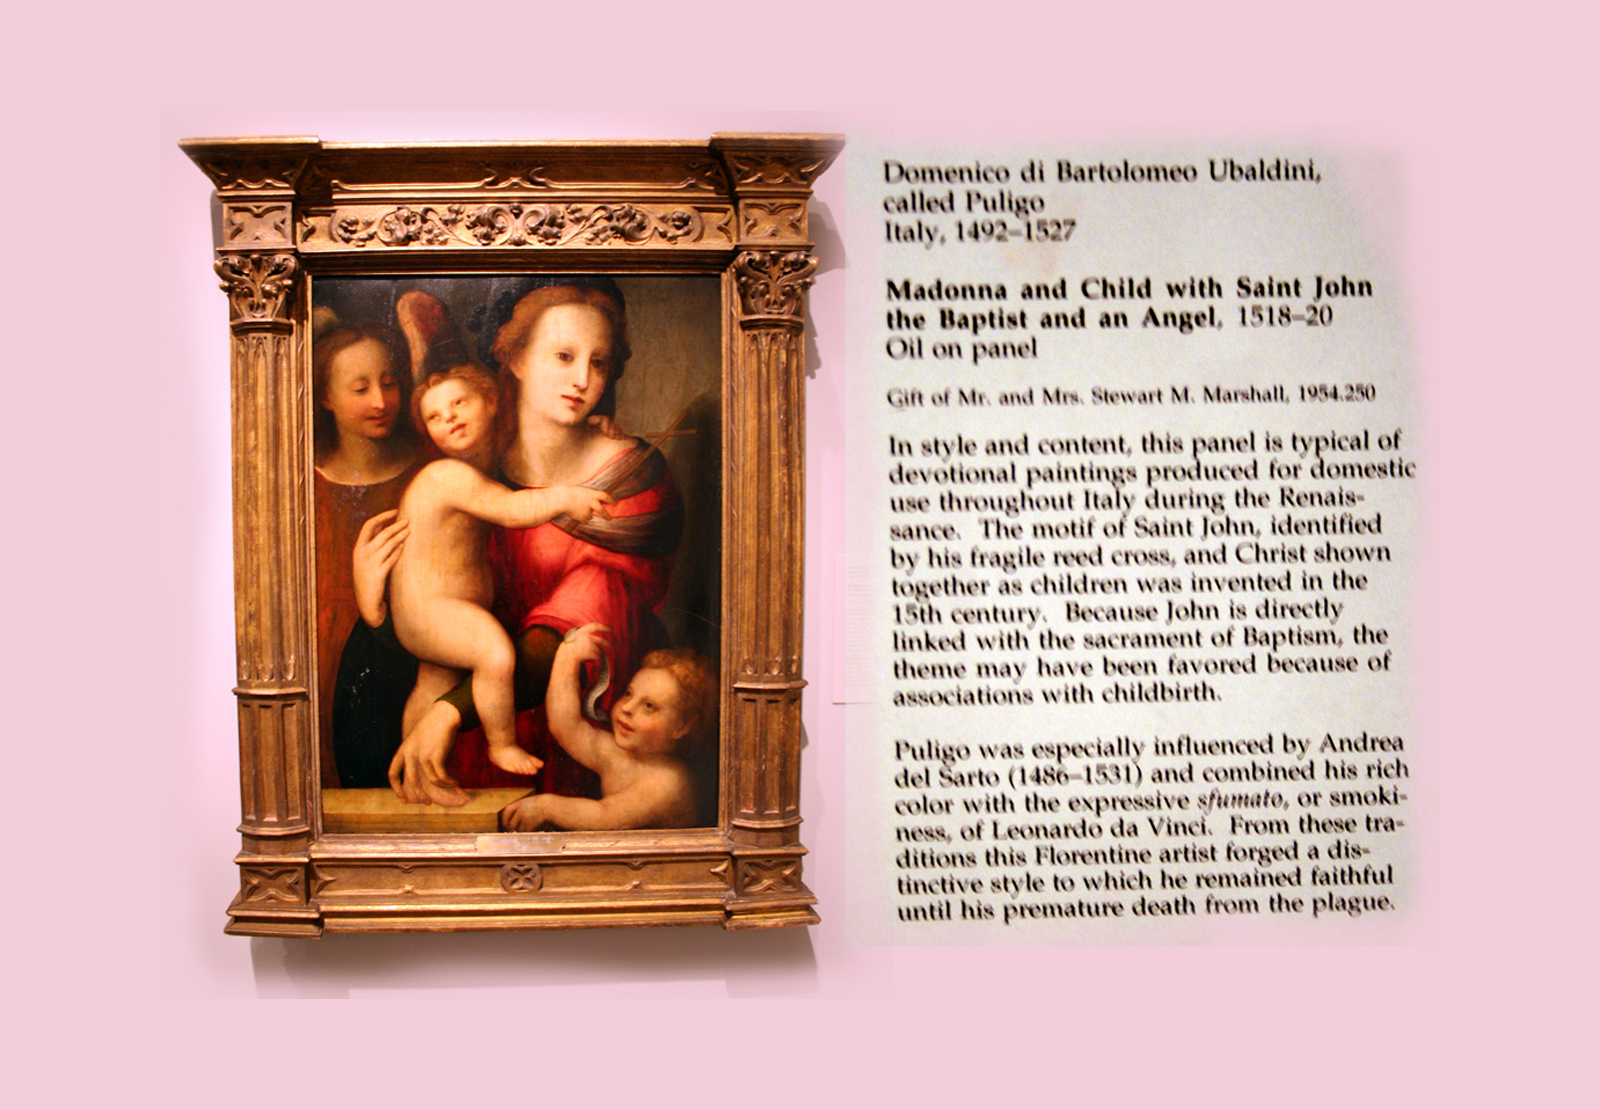 childbirth and the italian renaissance Titian was a leading artist of the italian renaissance who painted works for pope paul iii, king philip ii of spain and holy roman emperor charles v.